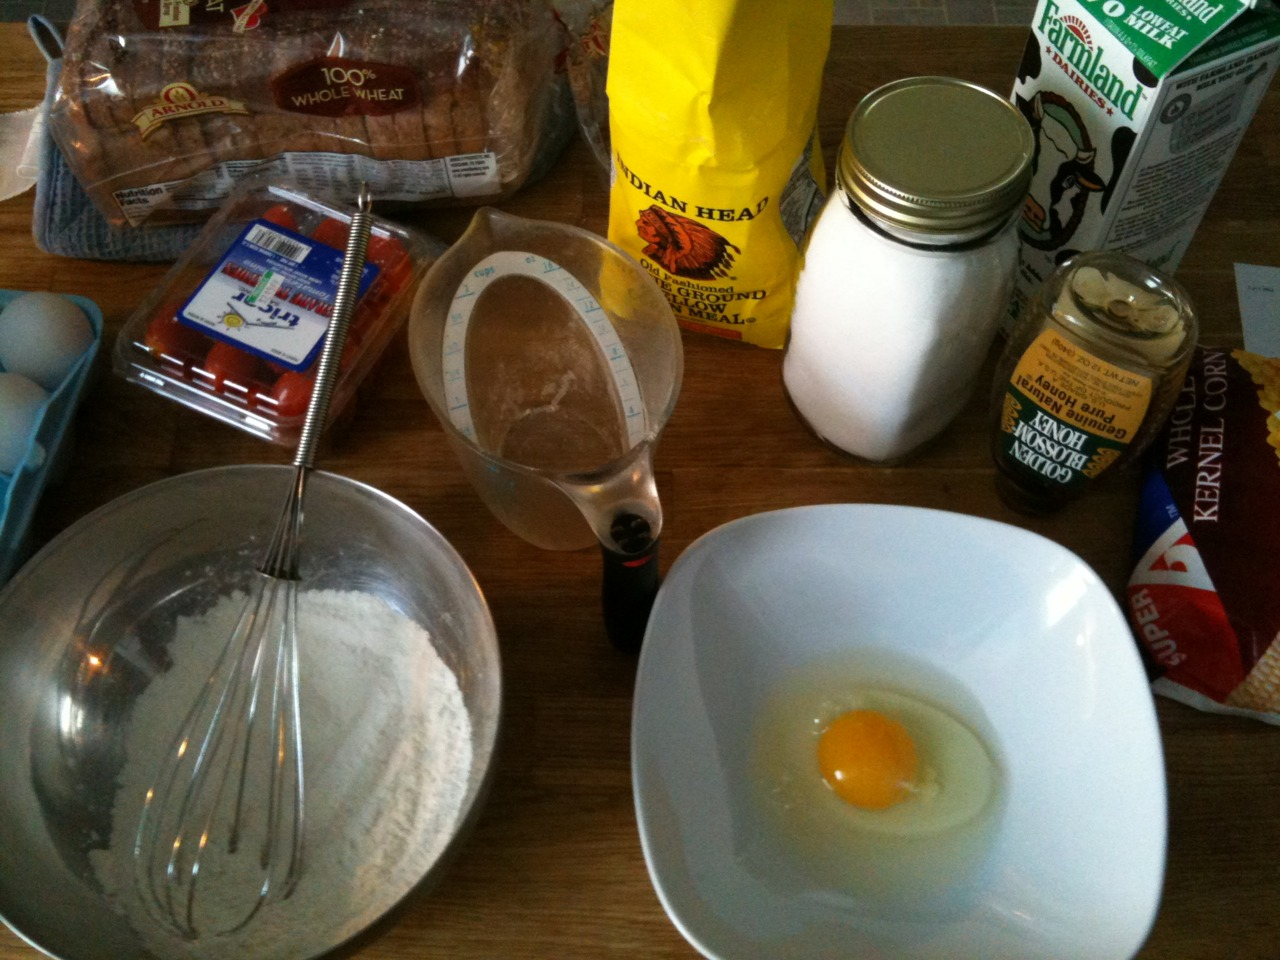 Today I'm making my favorite dish from my grandma: cornmeal pancakes